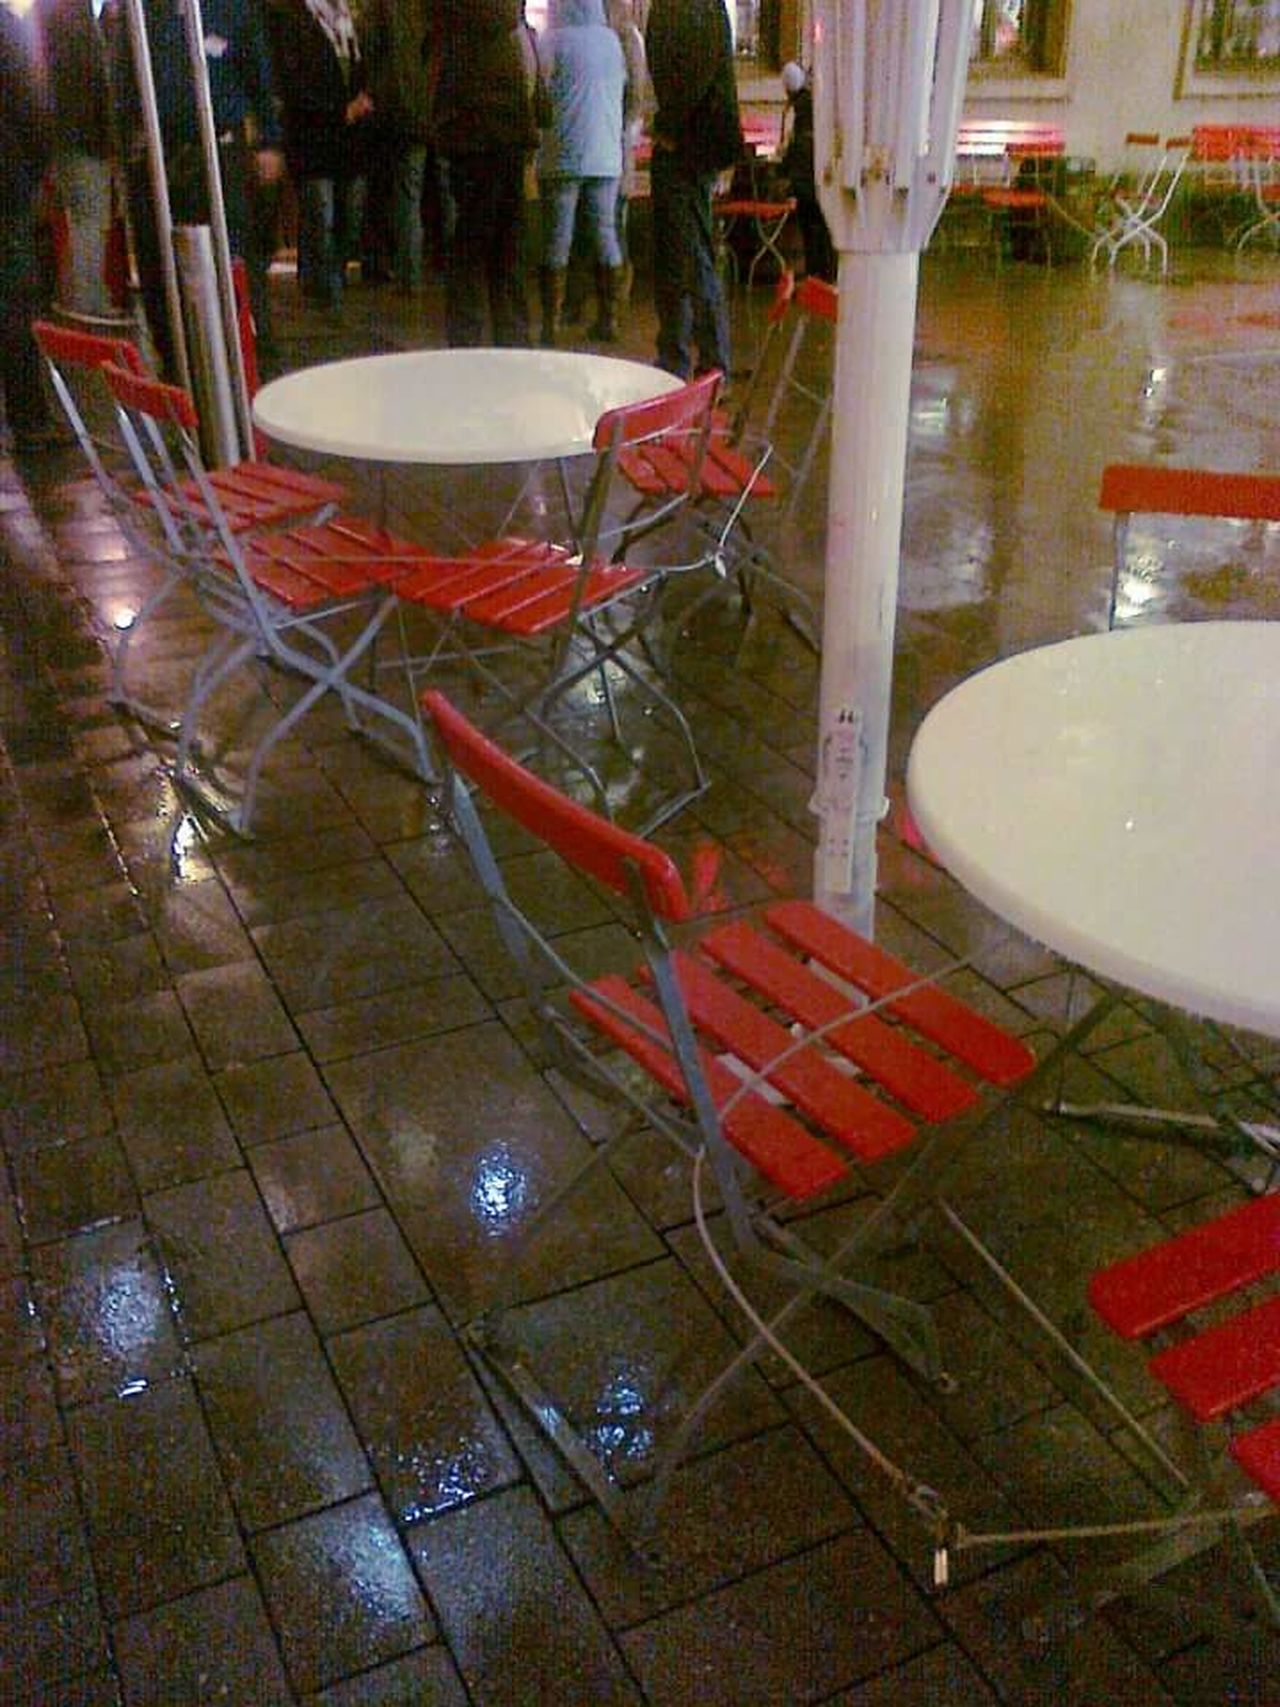 Chairstories Empty Chairs And Empty Tables Tables And Chairs Chairs Rainy Night Köln Kolschbeer Früh